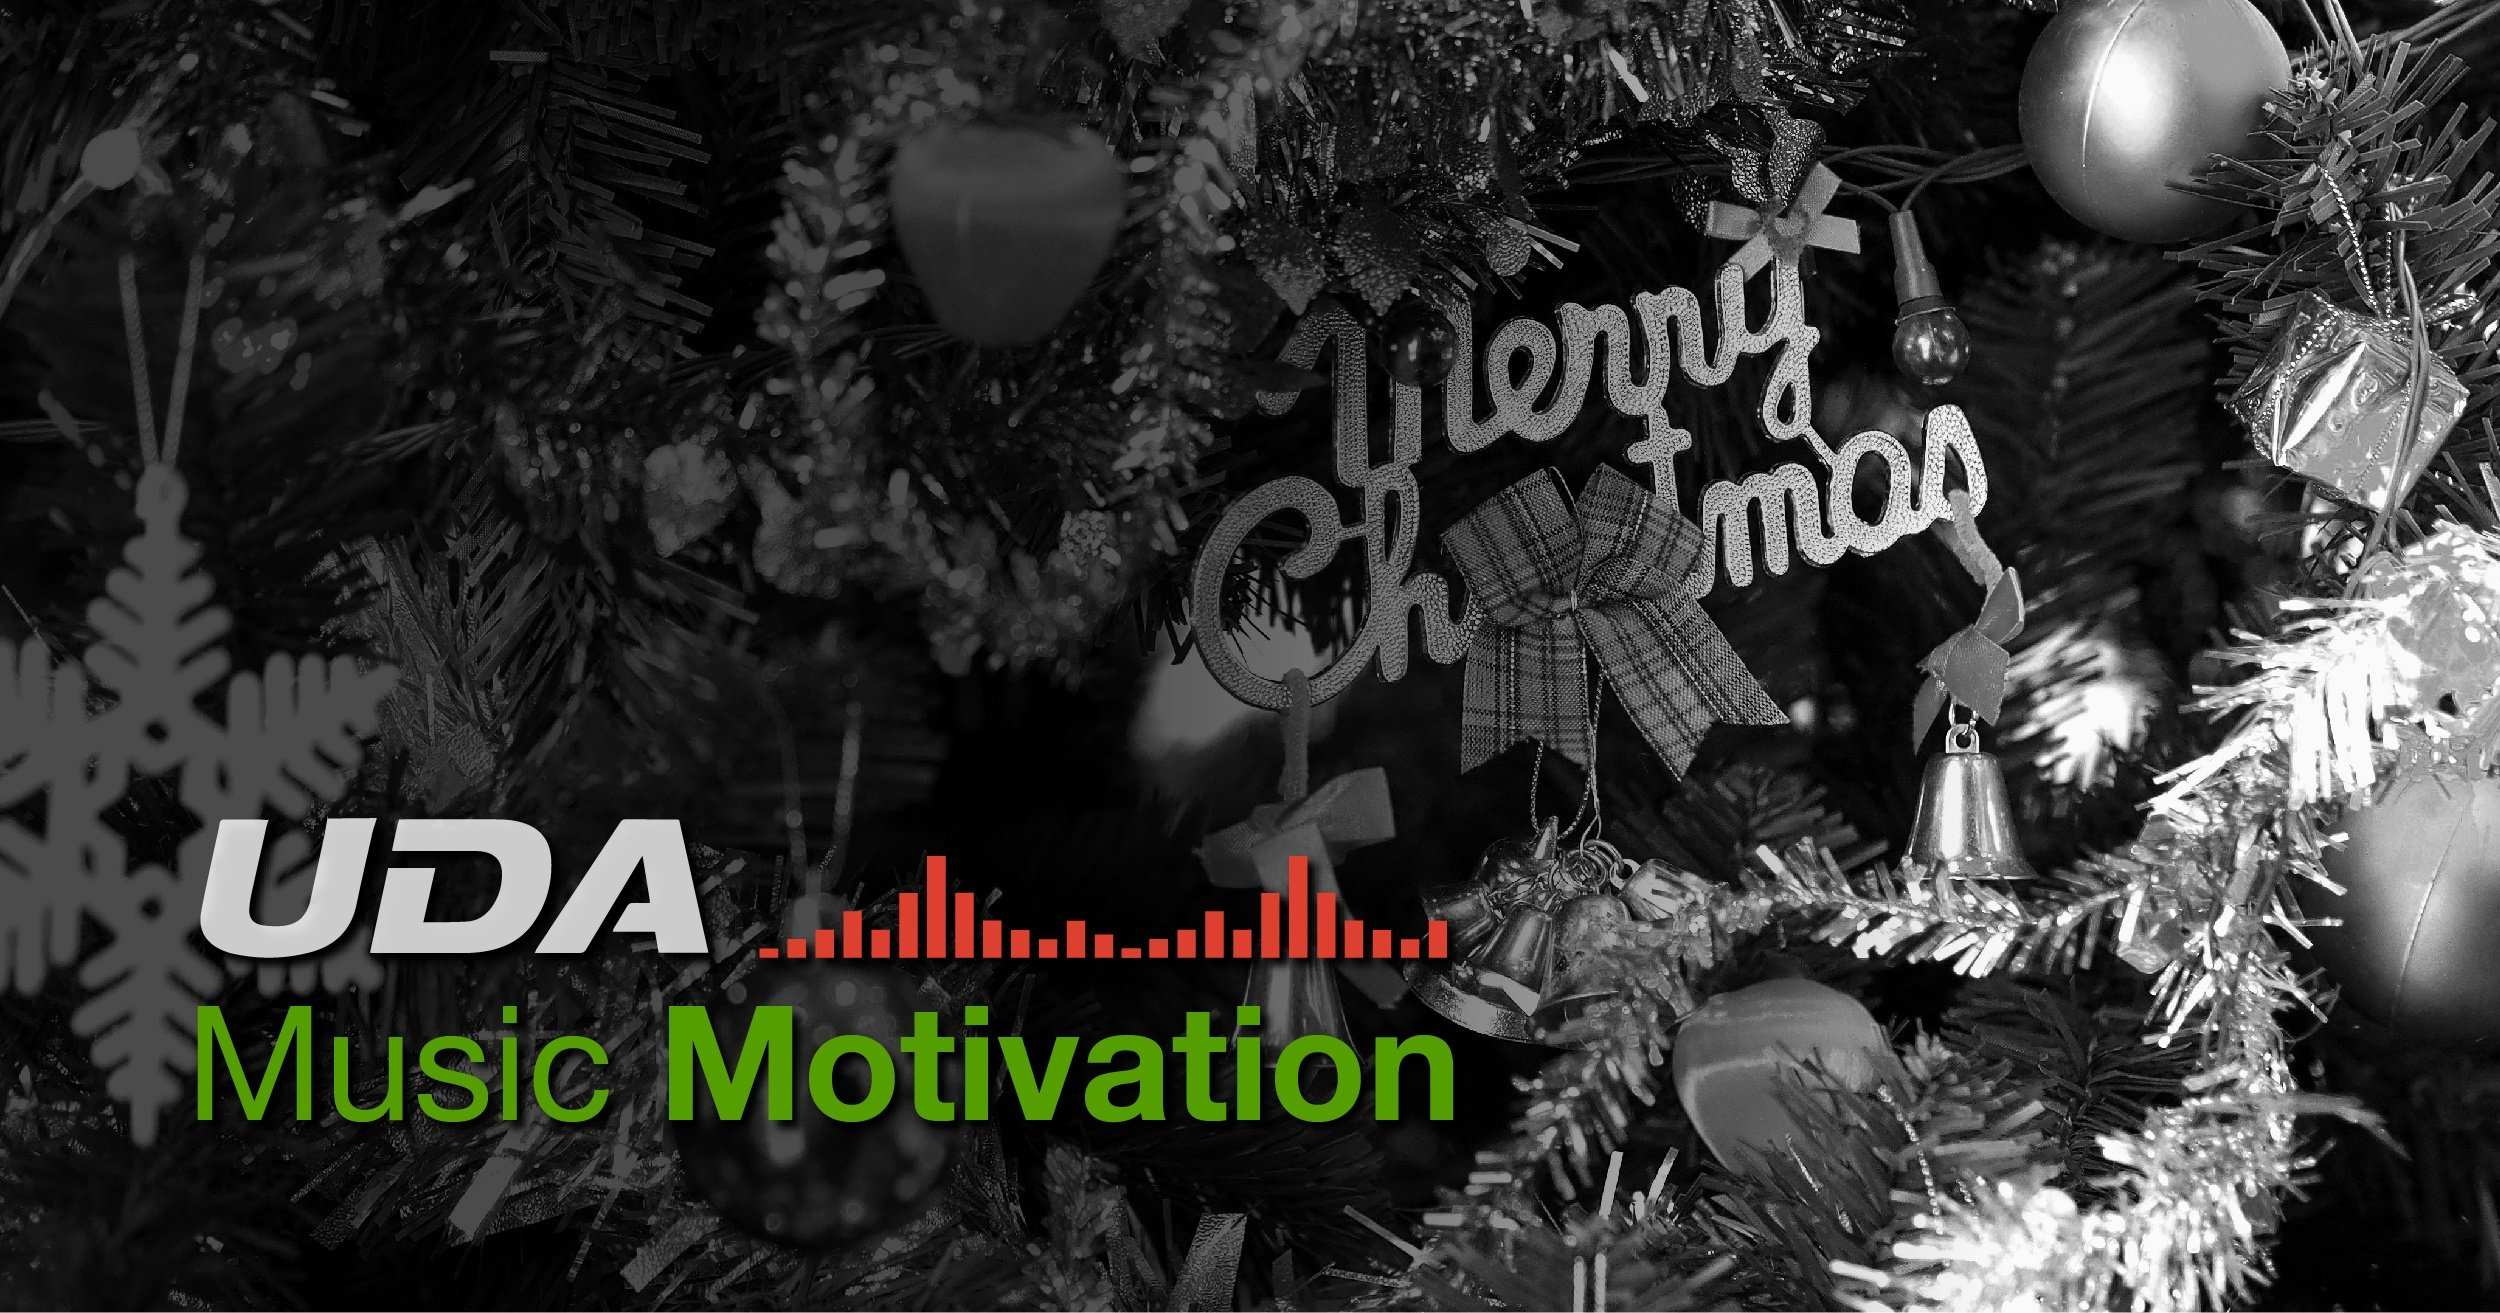 Music Motivation: Office Christmas Party